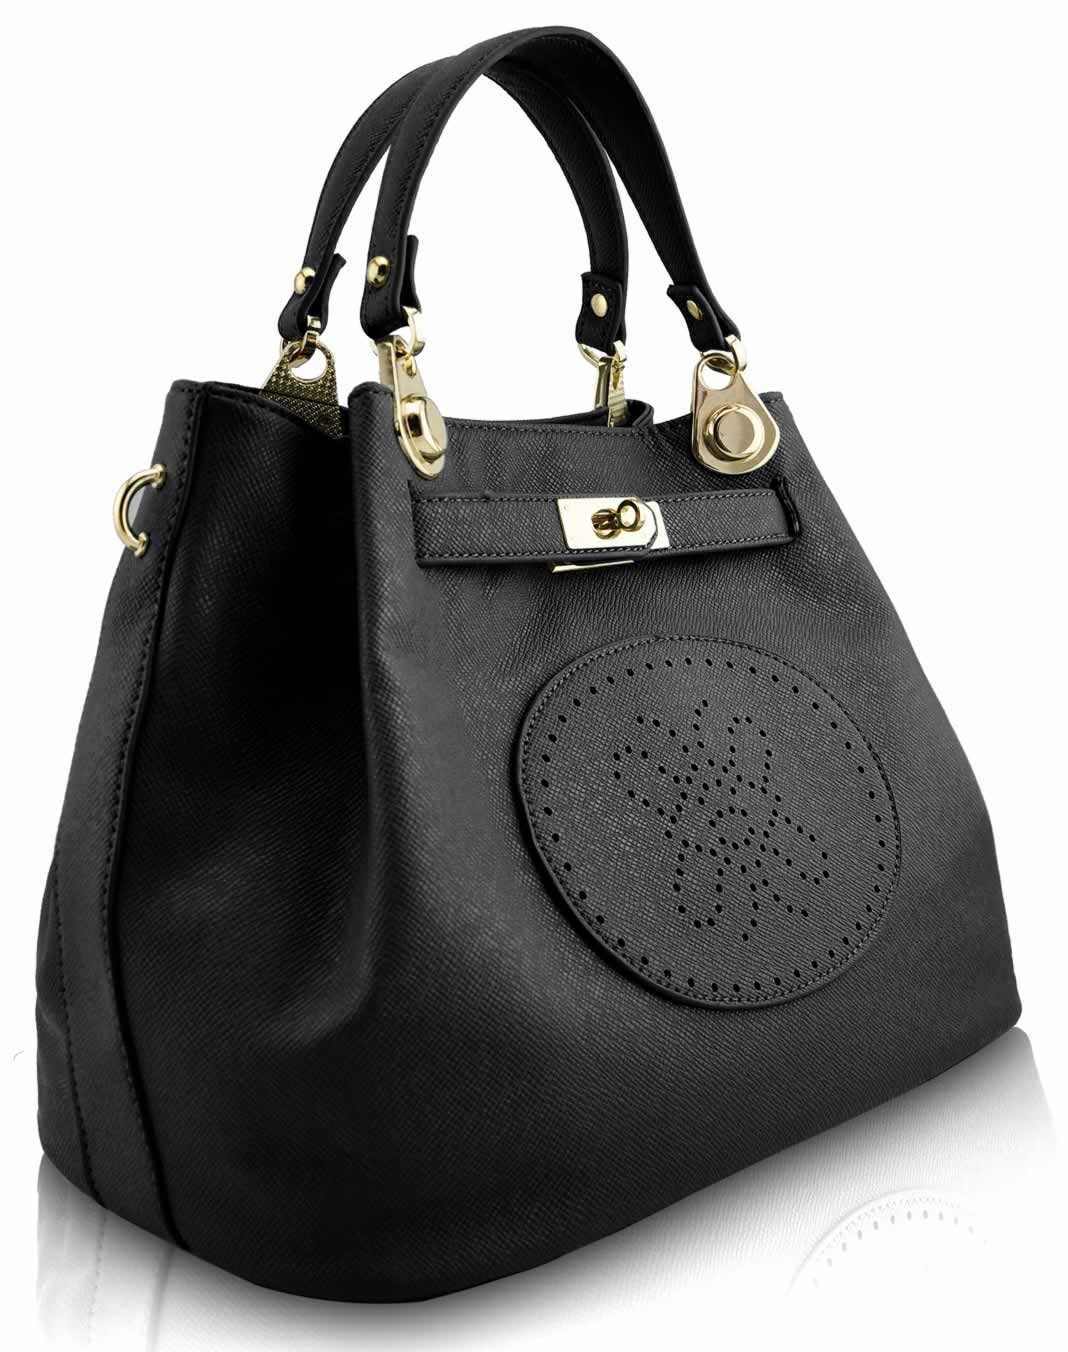 Wholesale Black Tote Bag With Long Strap